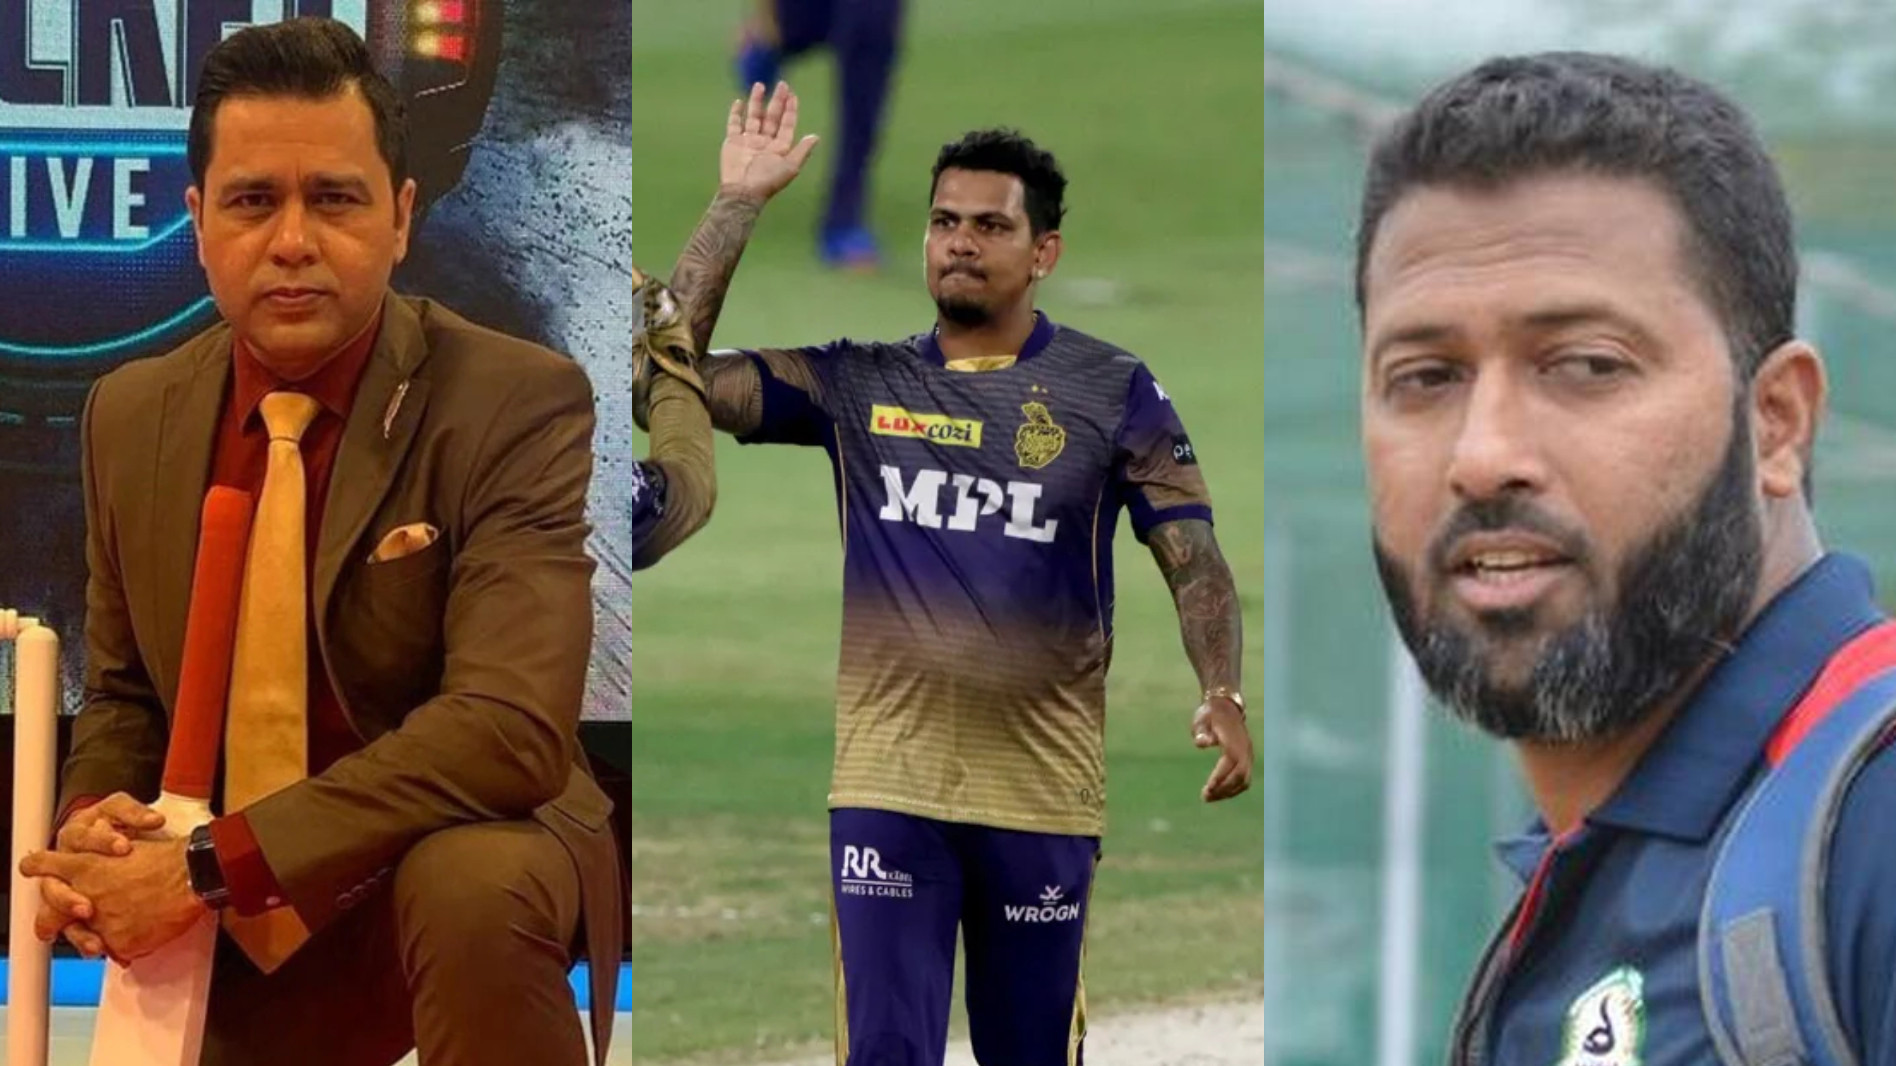 IPL 2021: Cricket fraternity reacts as Sunil Narine's 4/21 helps KKR restrict RCB to 138/7